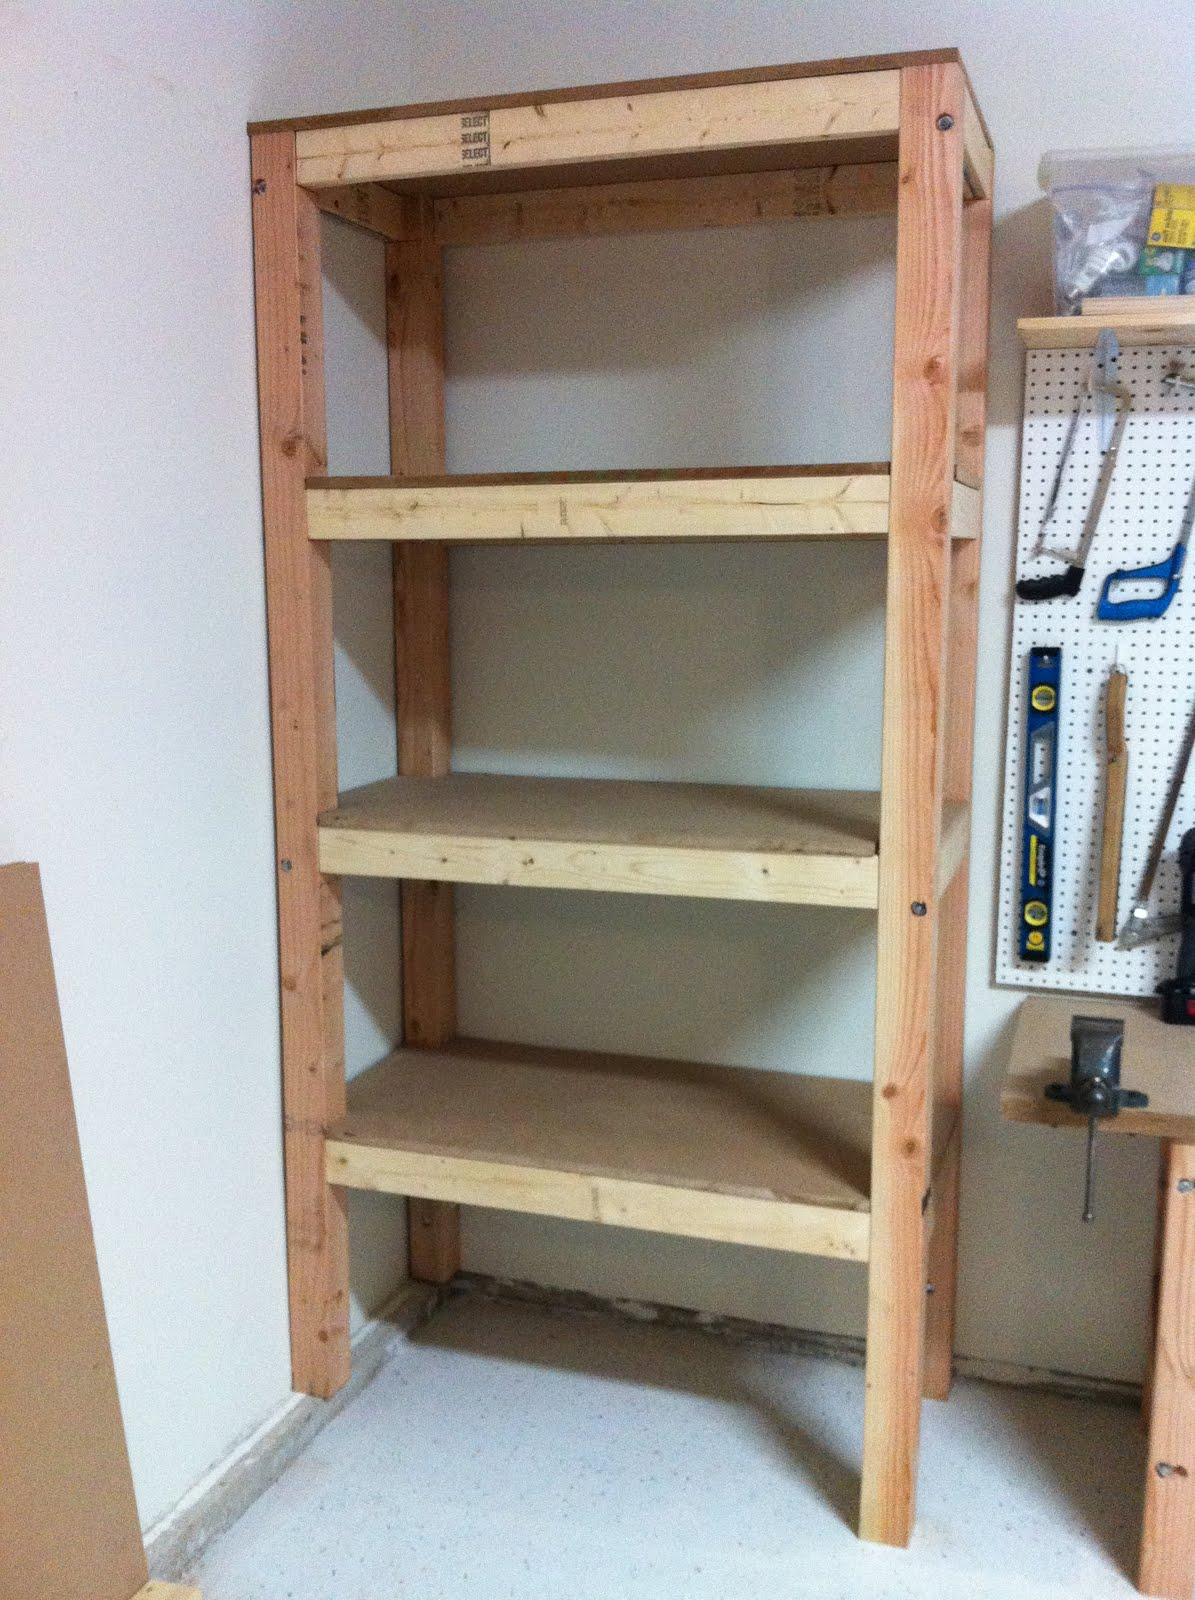 Shelves: 3/4' MDF Board Attached to wall studs with 5/16 x 5 lag bolts